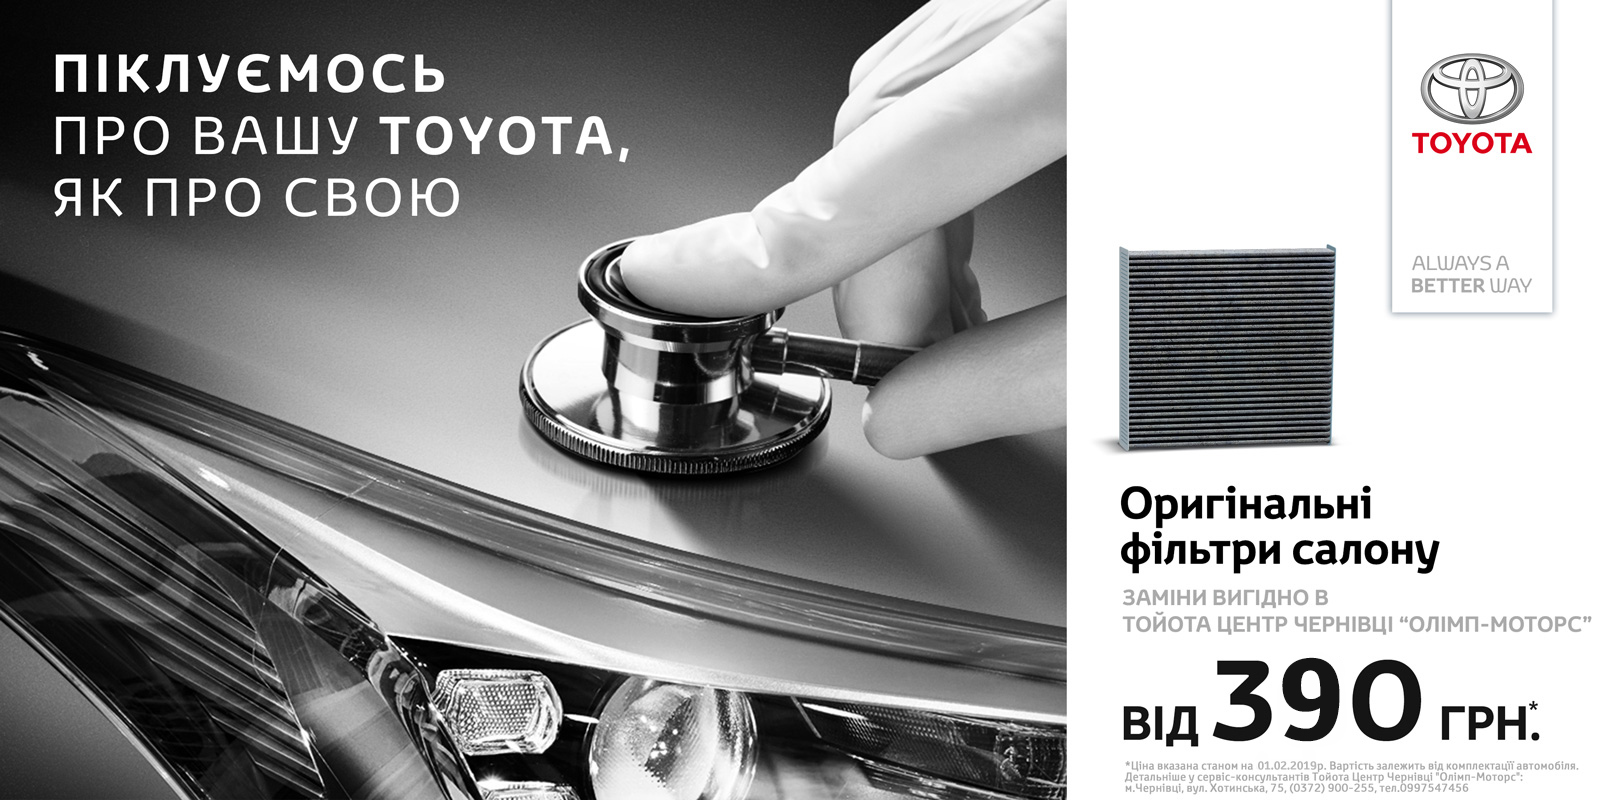 toyota_offservice_6x3_stetho_2_product_filters_03